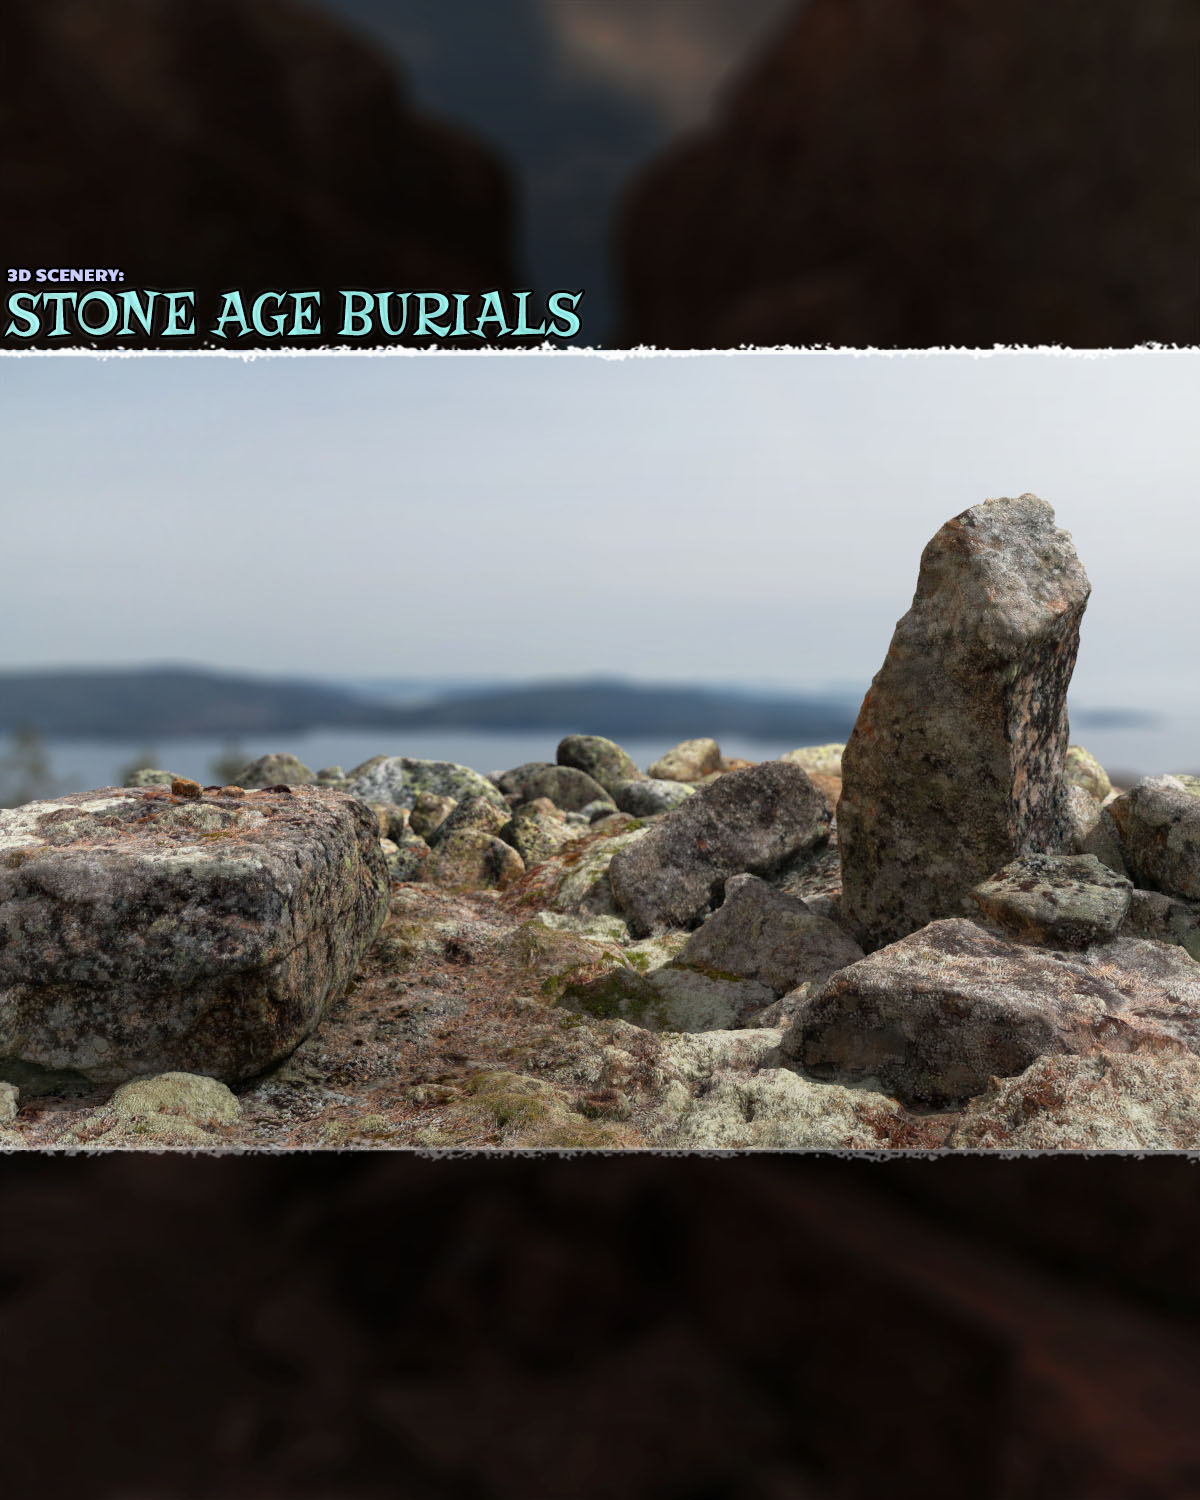 3D Scenery: Stone Age Burials by ShaaraMuse3D